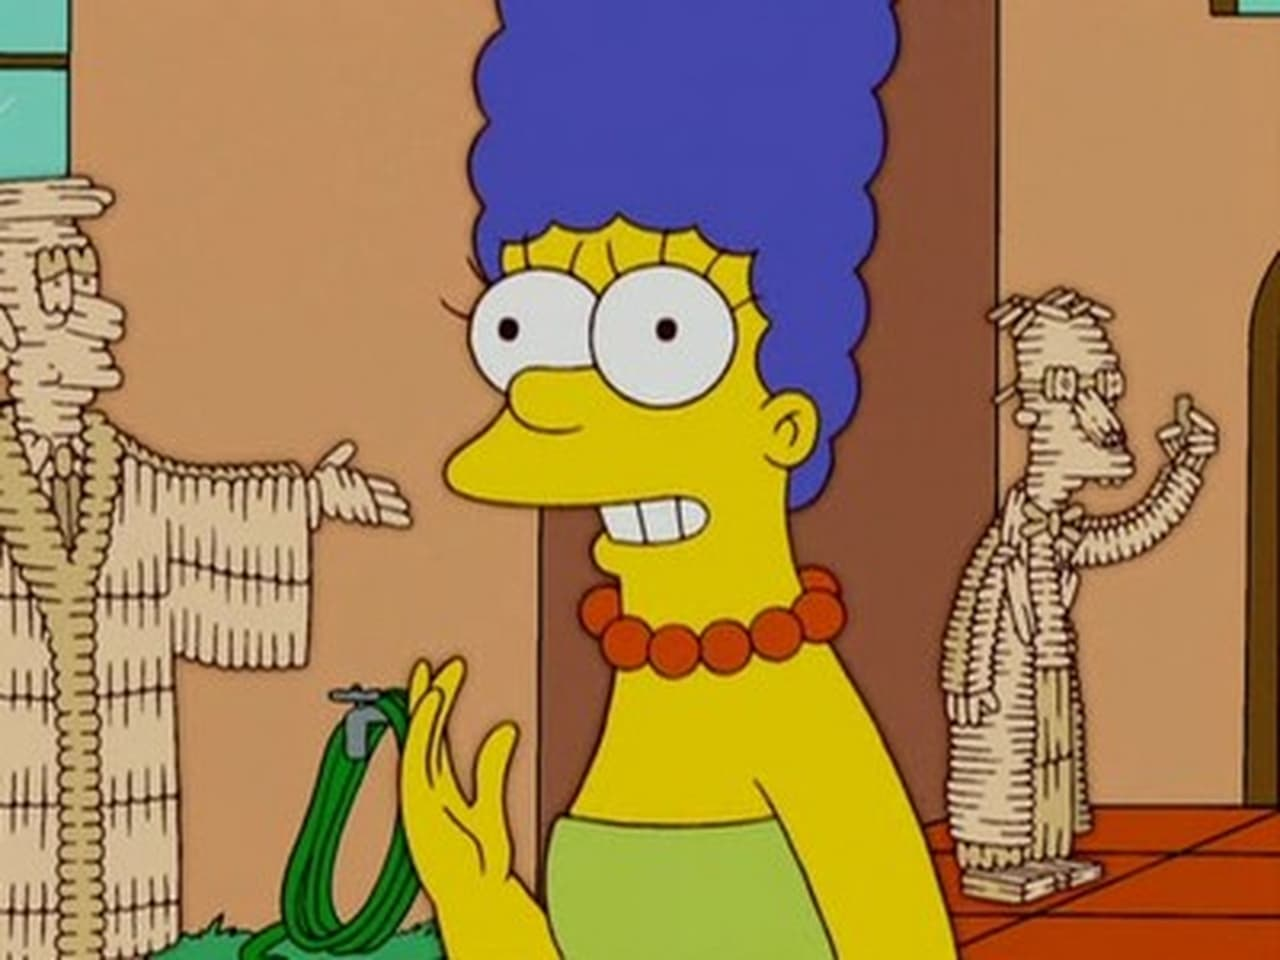 The Simpsons - Season 18 Episode 7 : Ice Cream of Margie (With the Light Blue Hair)